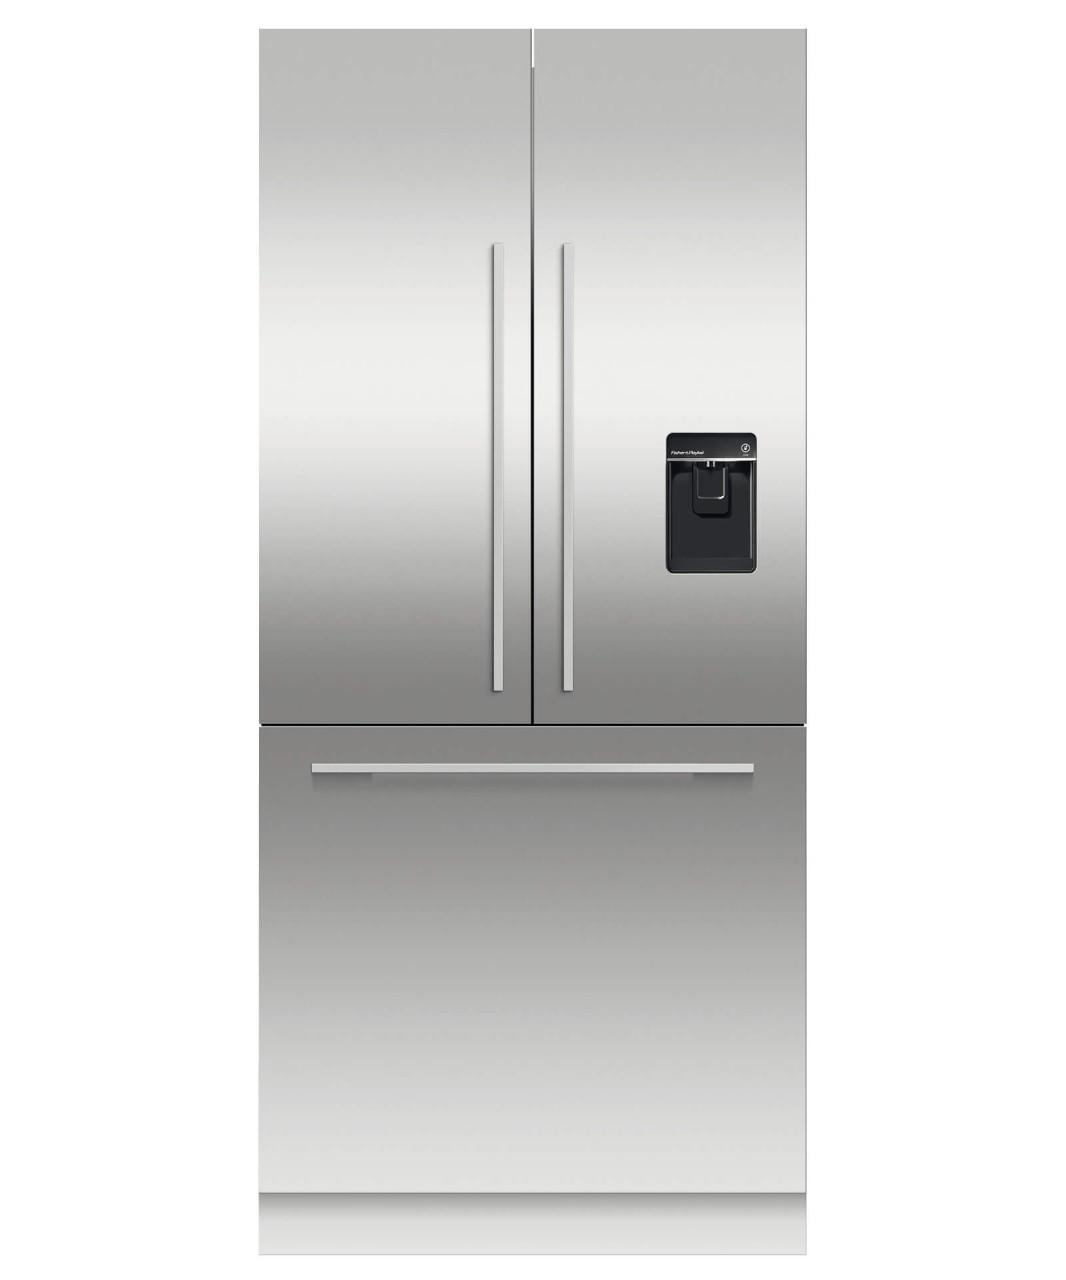 Rs36a80u1 Fisher Paykel Activesmart Refrigerator